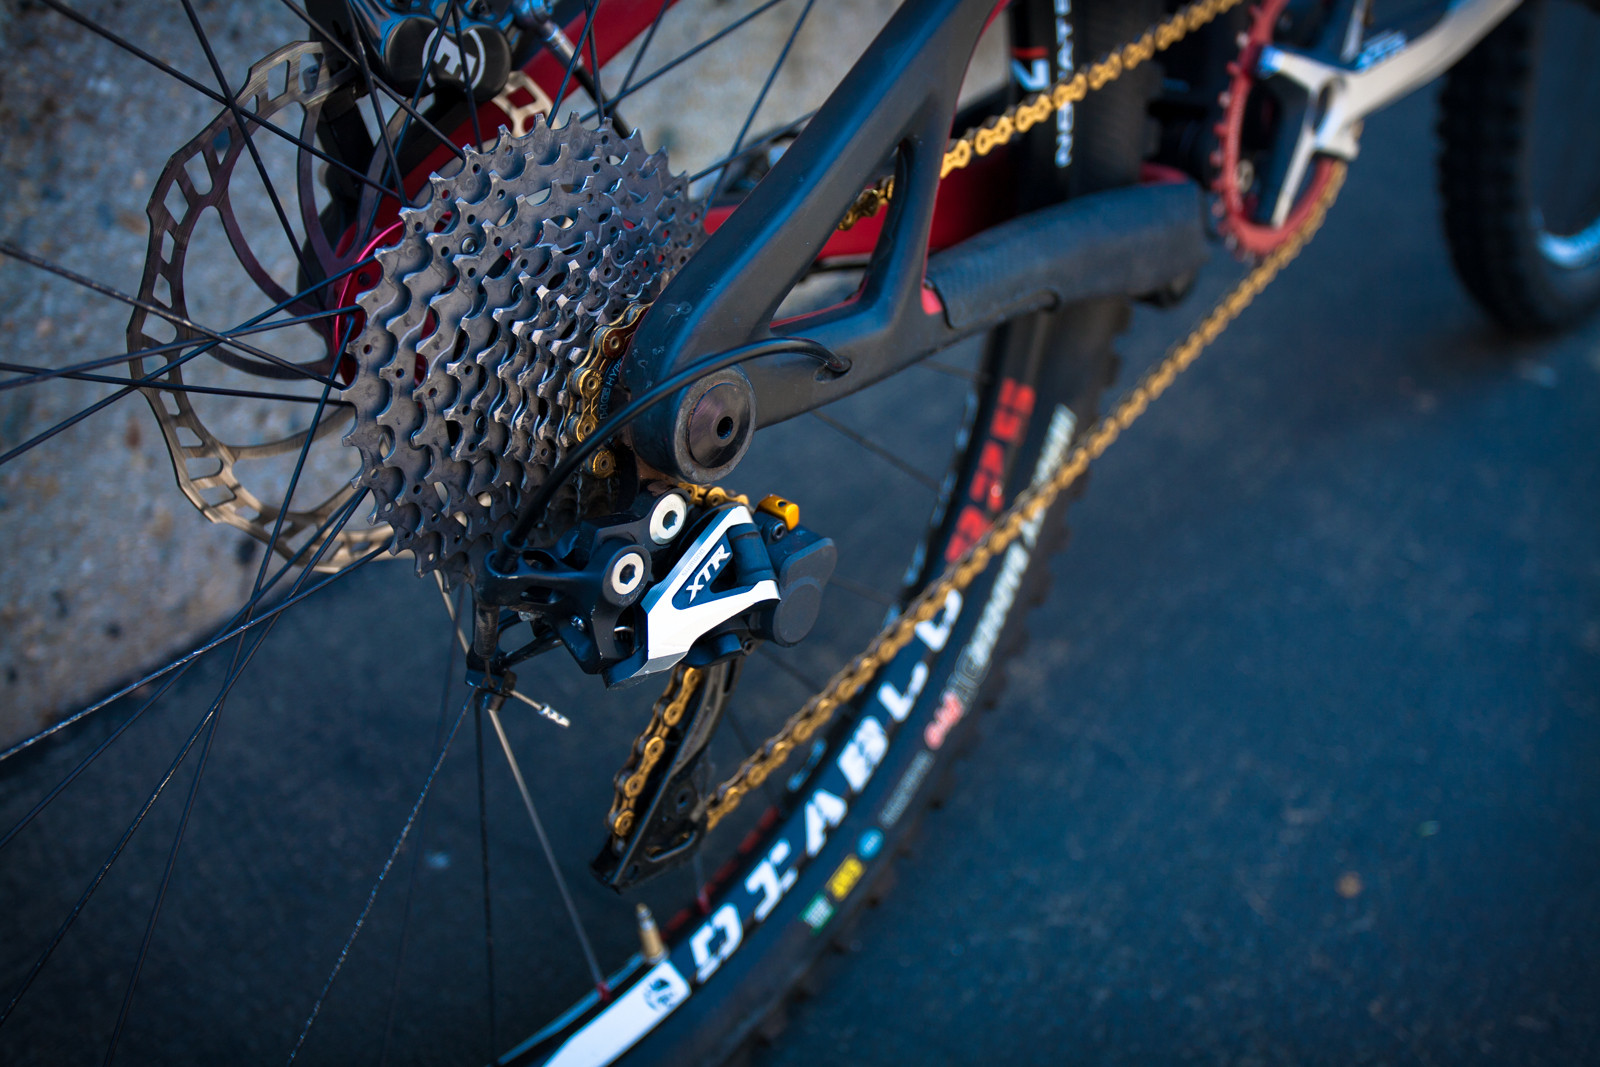 Shimano XTR Rear Derailleur and Cassette on Brian Lopes' Intense Tracer T275 - Pro Bike Check: Brian Lopes' Intense Tracer T275 - Mountain Biking Pictures - Vital MTB